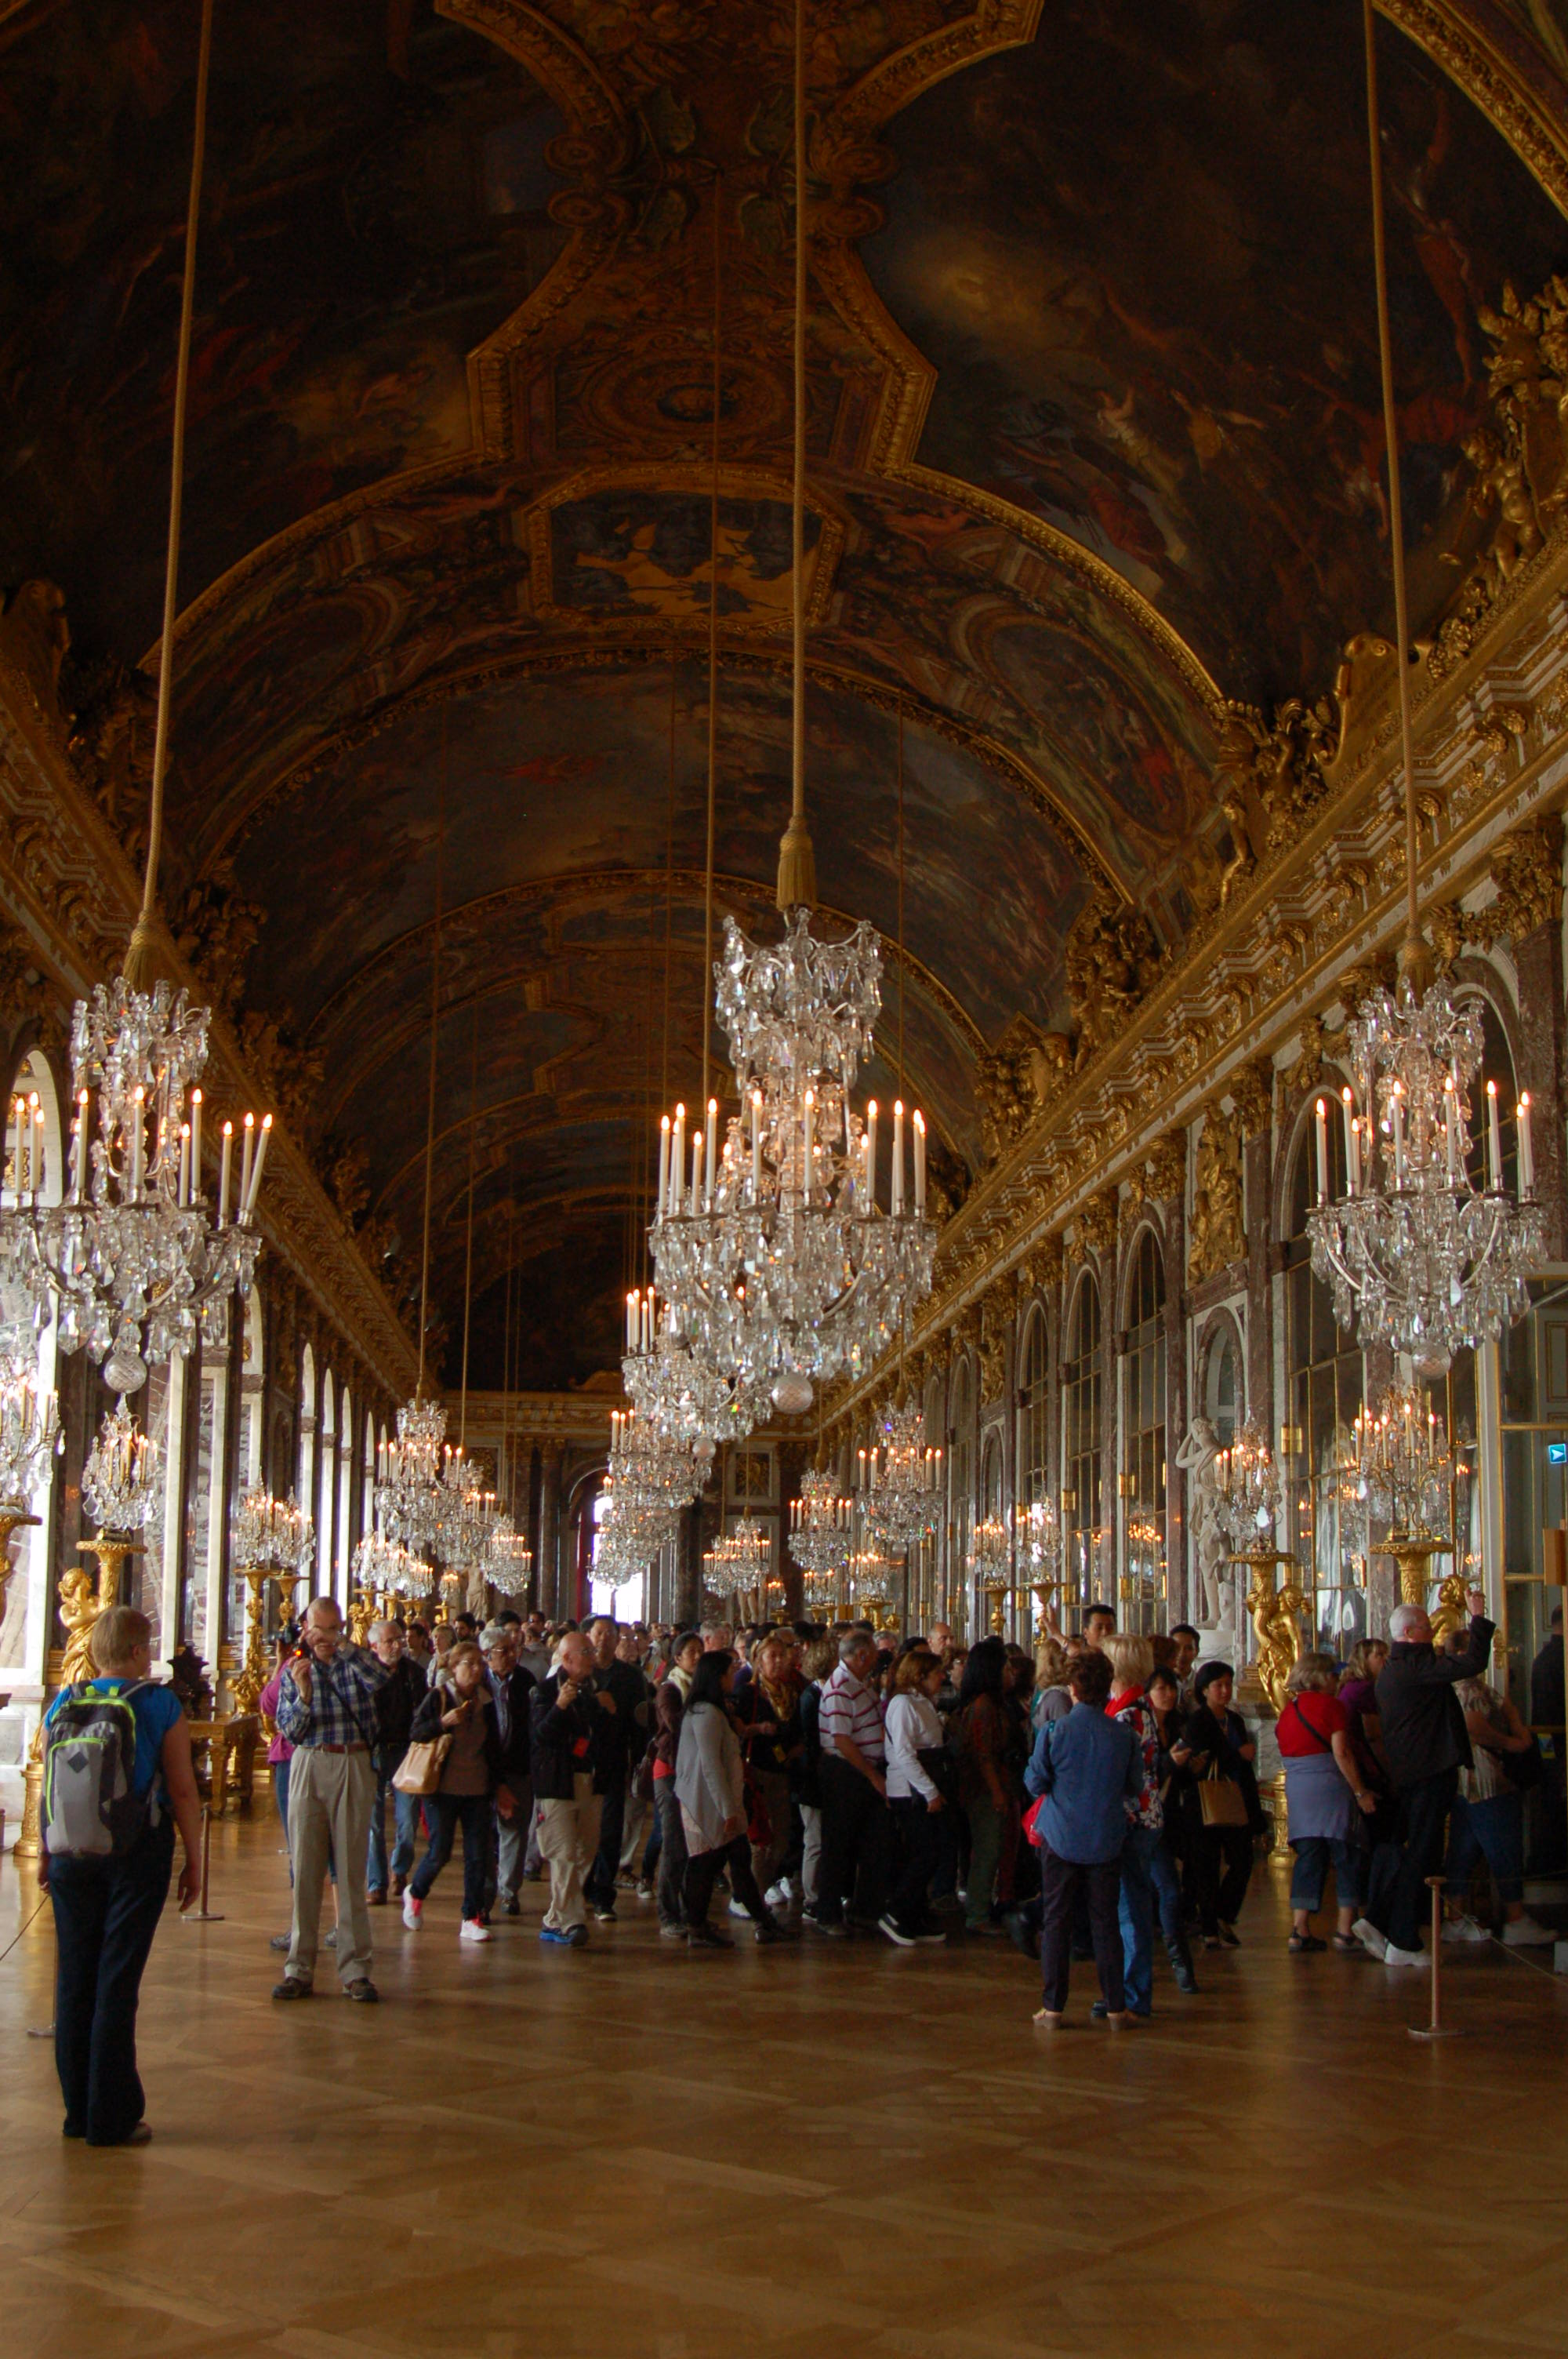 Hall Of Mirrors, Palace Of Versailles